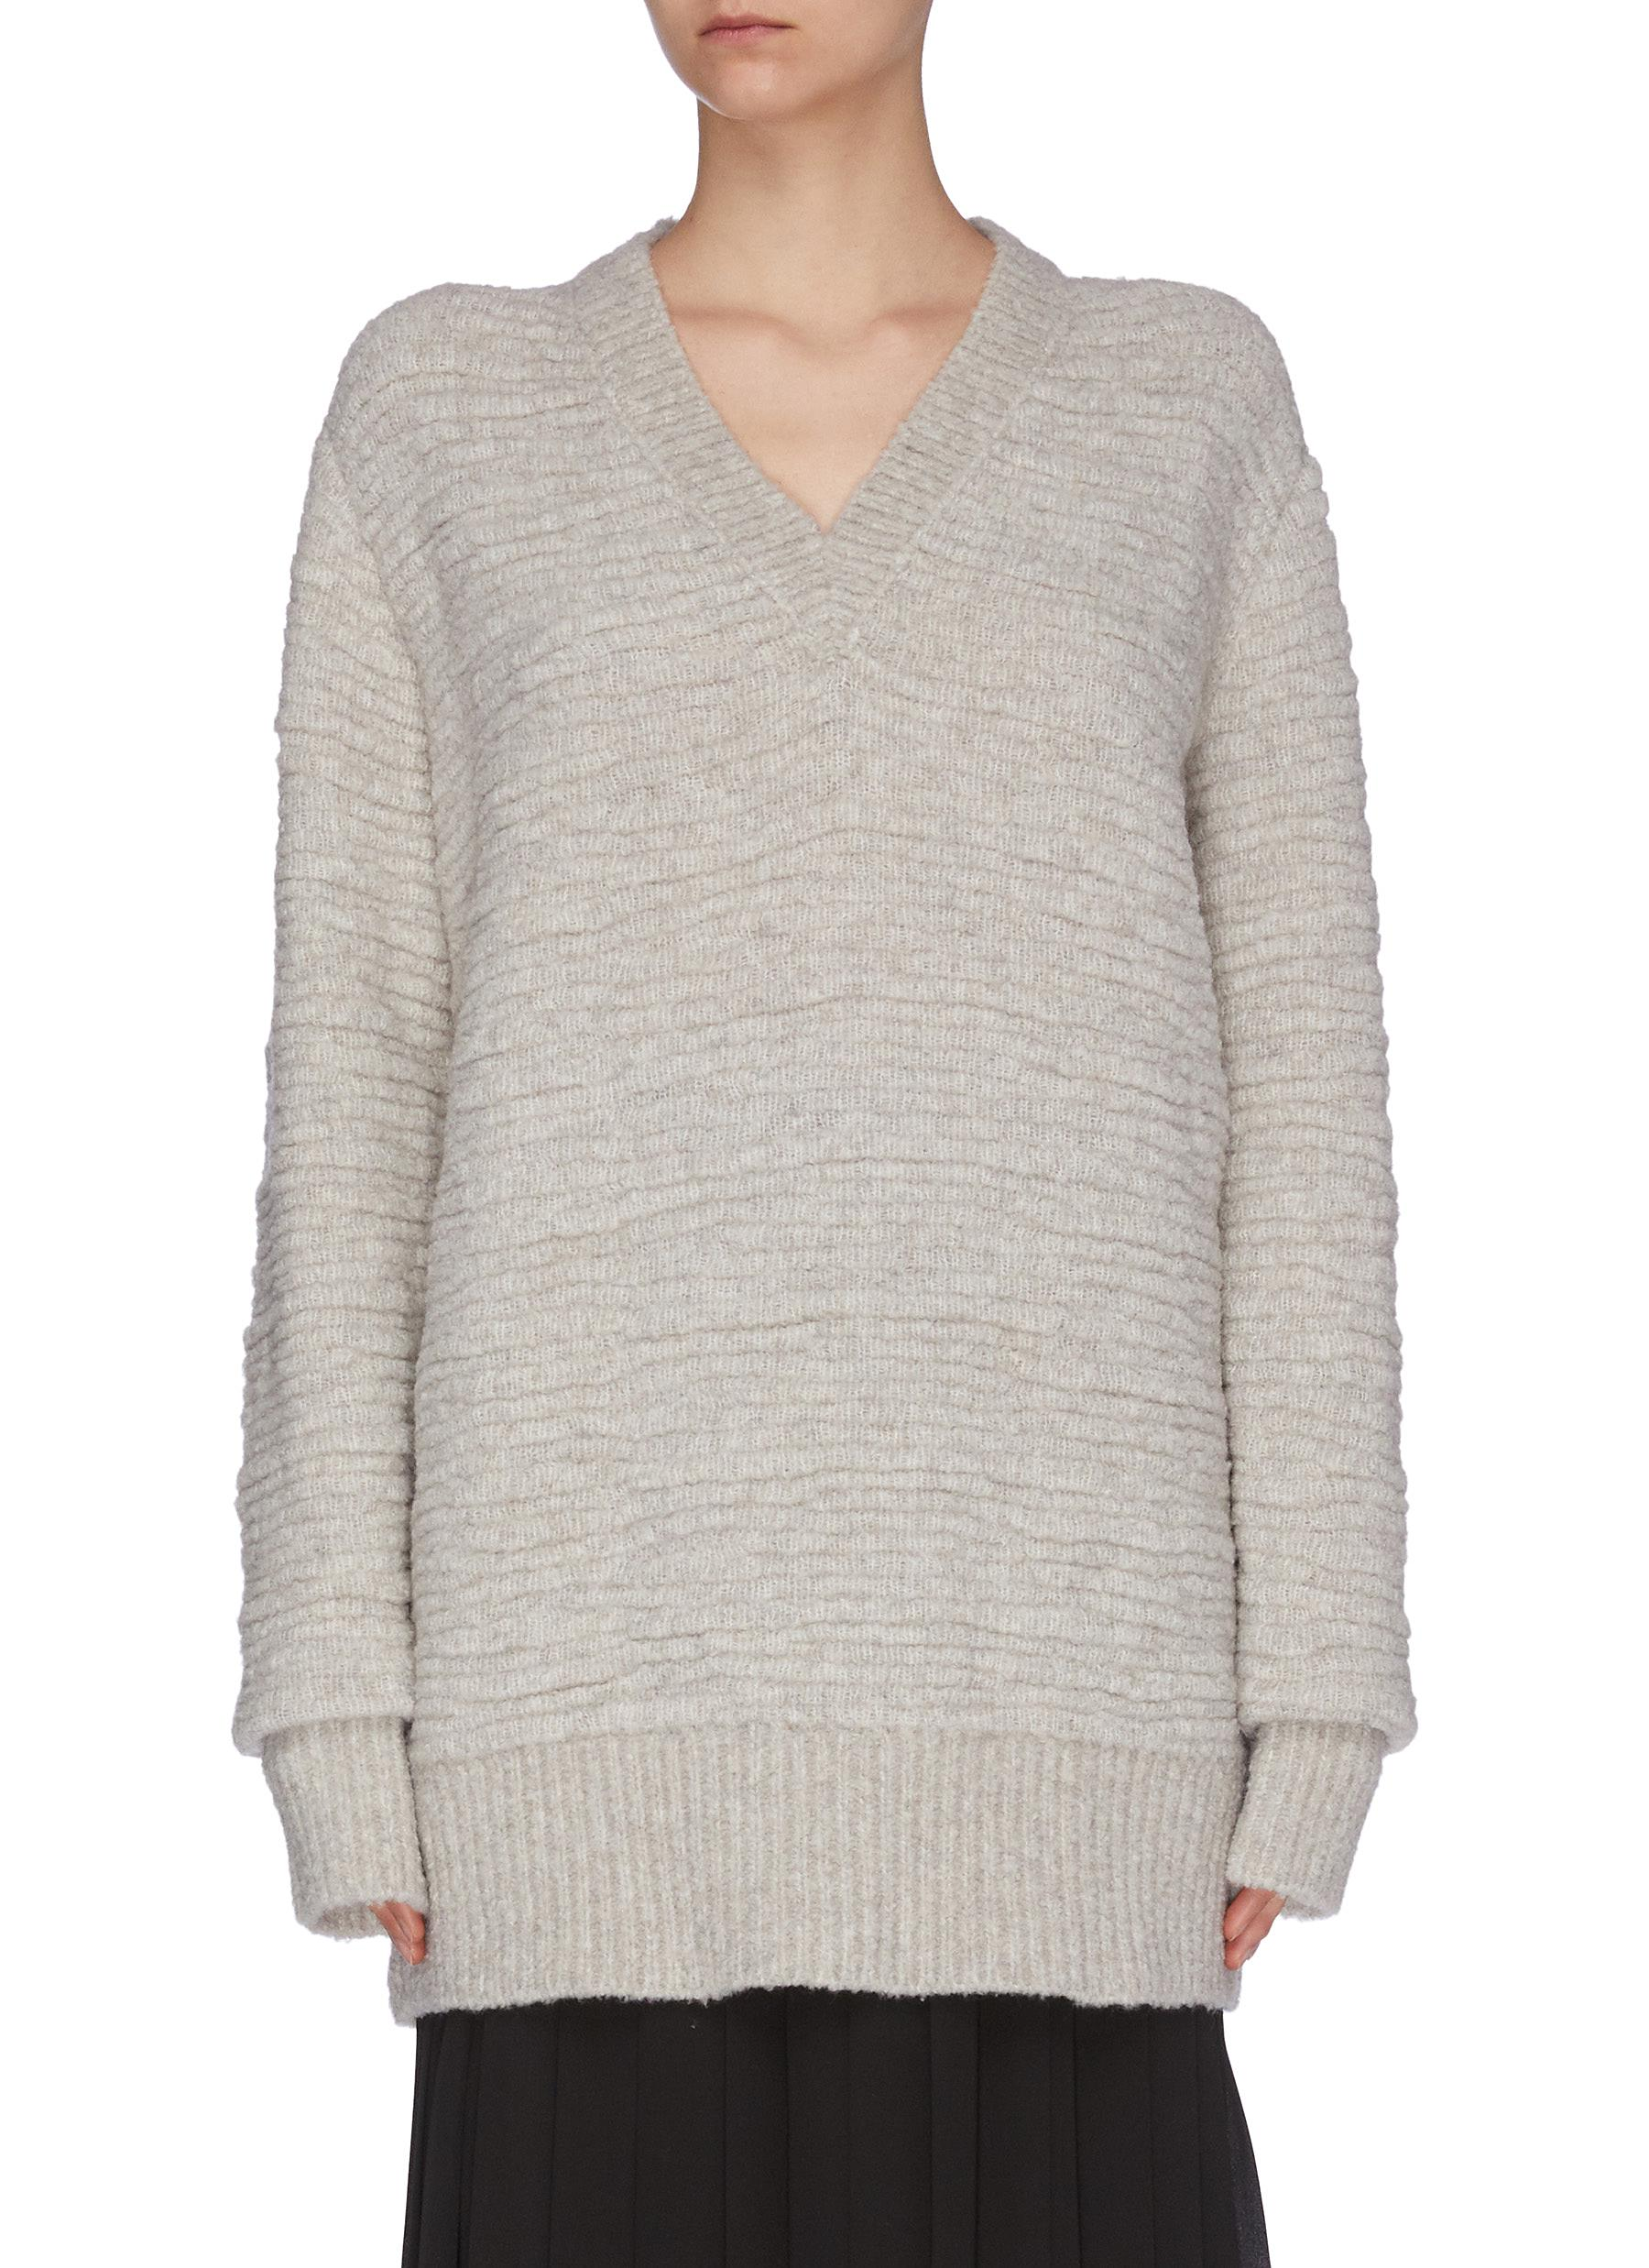 Buy The Row Knitwear 'Elaine' bouclé V-neck sweater